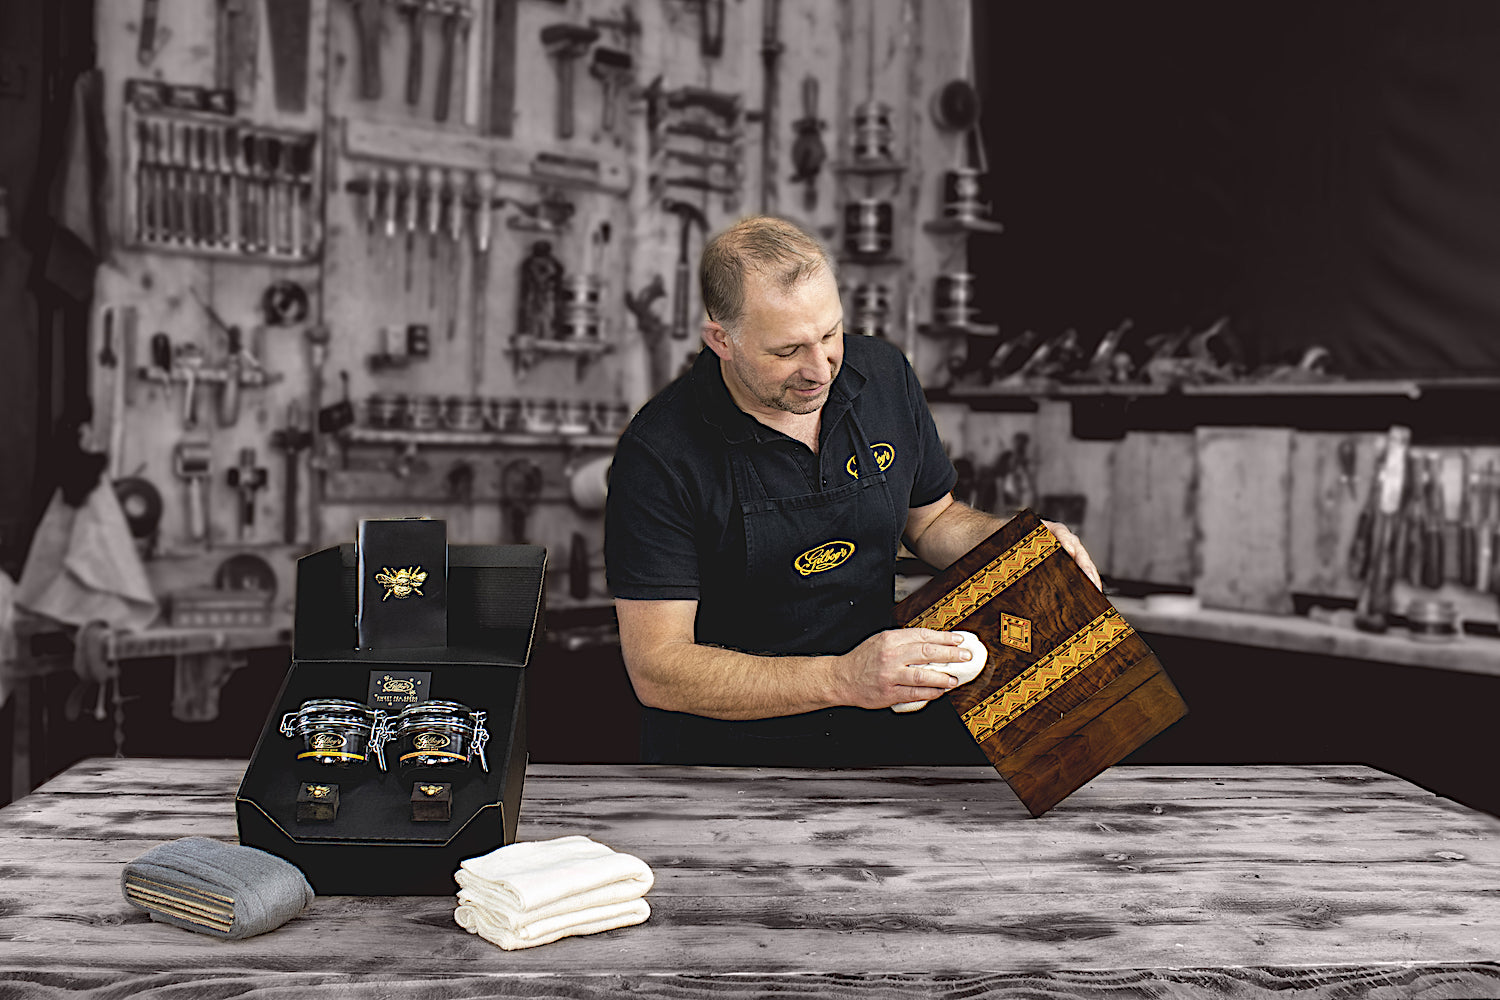 Simon Gilboy polishing an antique box using Gilboys beeswax wood polishes